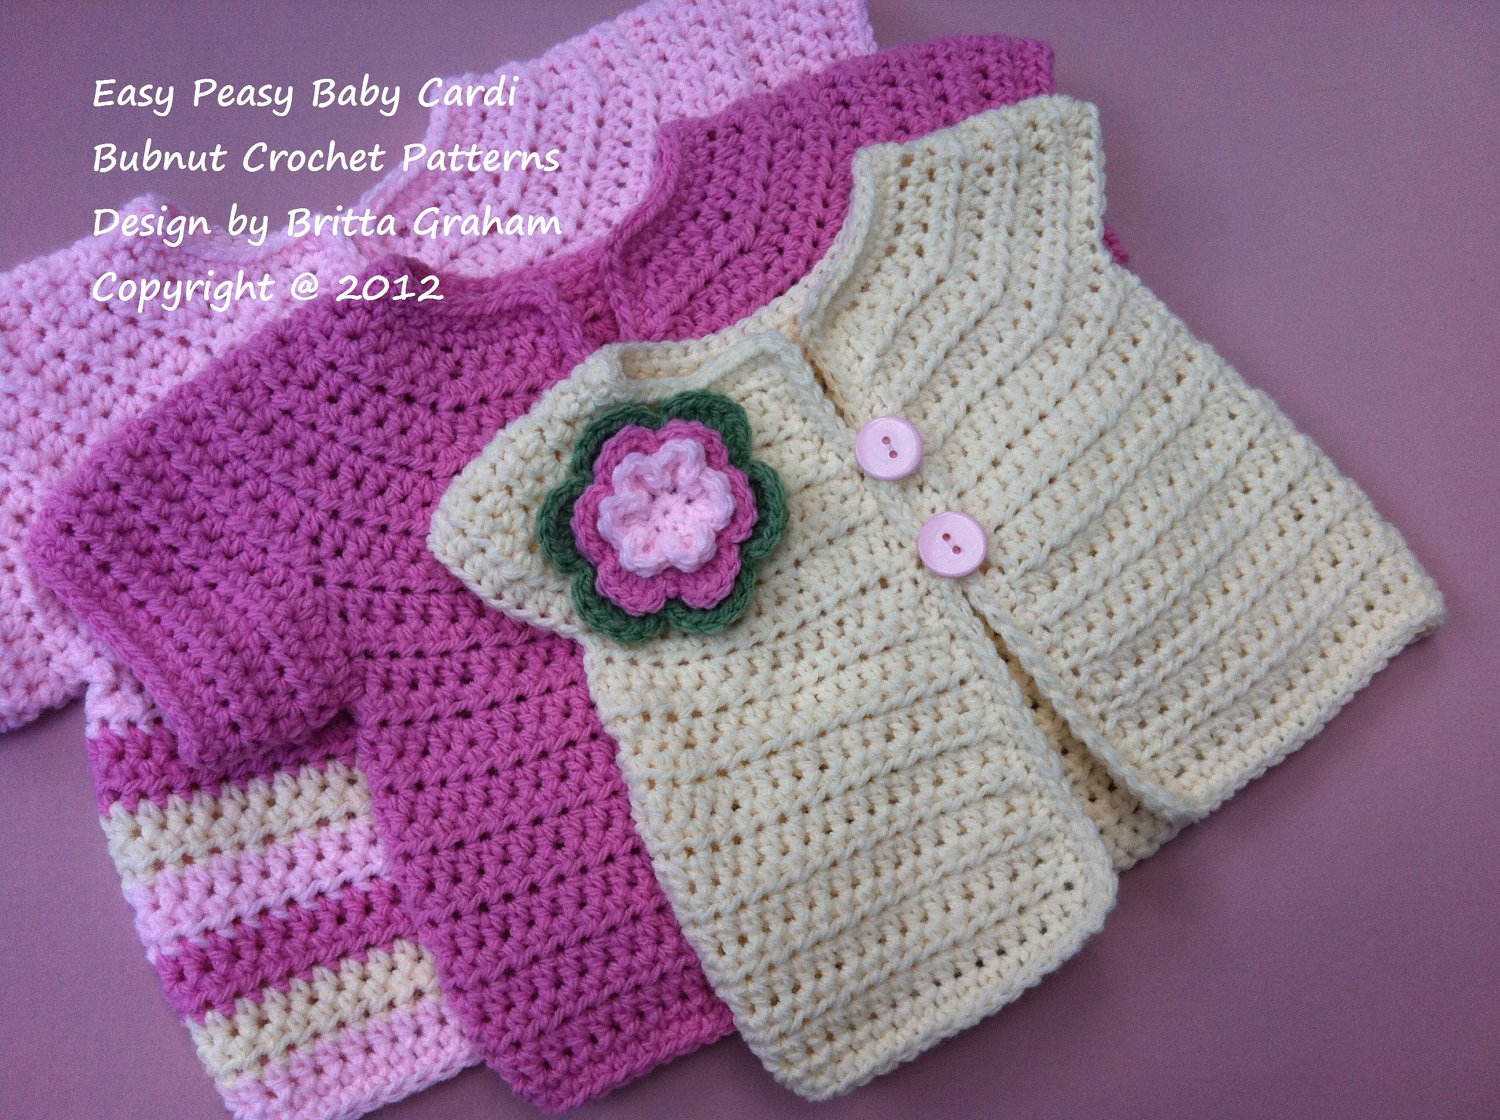 Easy Baby Sweater Crochet Pattern Unique Beginner Crochet Baby Sweater Pattern Of Great 47 Photos Easy Baby Sweater Crochet Pattern